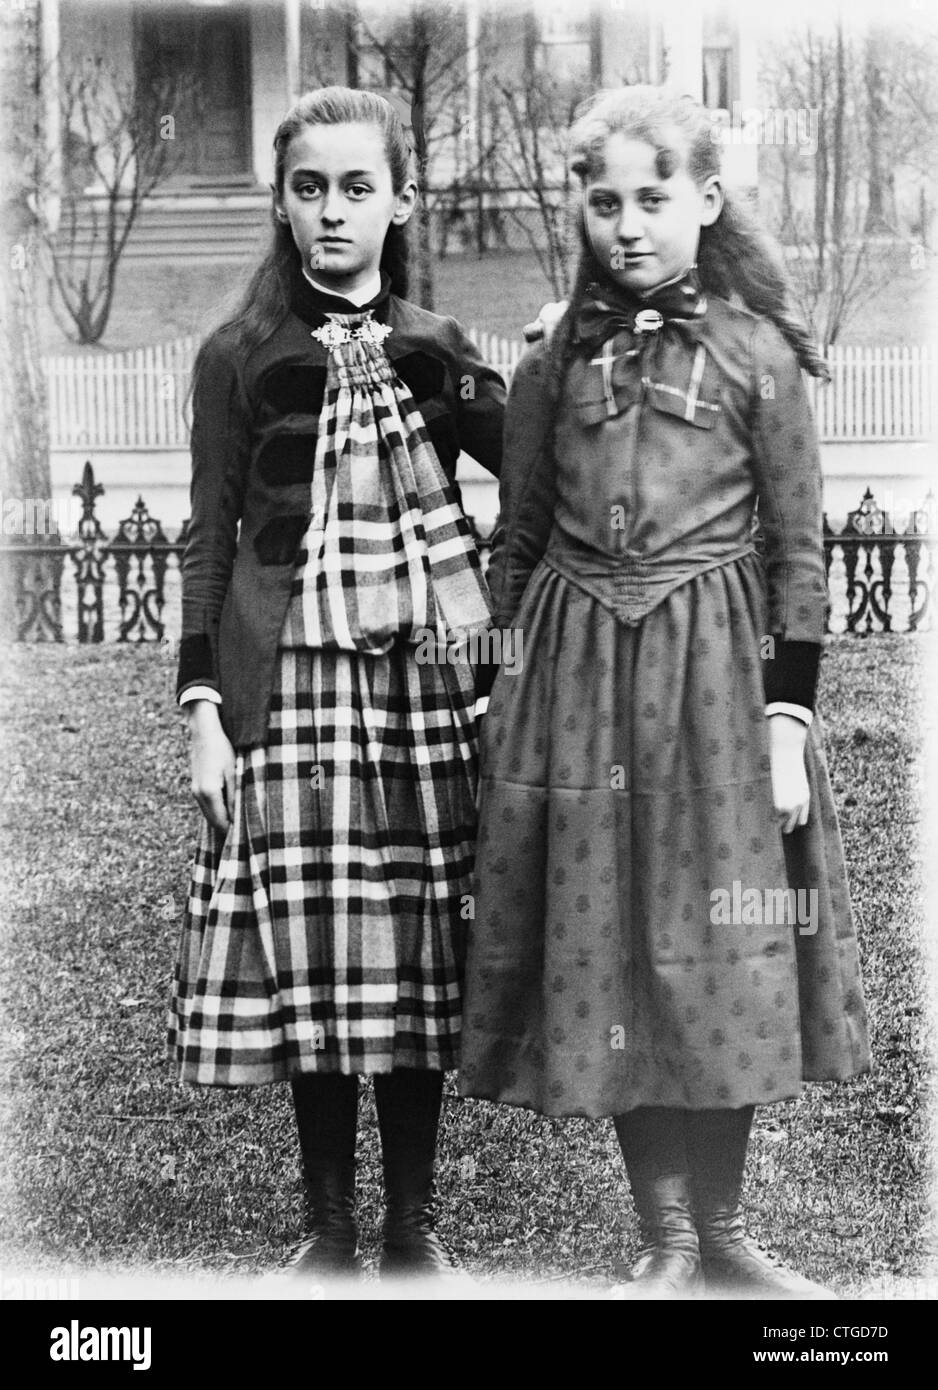 1880s 1900s 1890s TURN OF THE CENTURY PORTRAIT TWO GIRLS POSING STANDING ARM IN ARM ON LAWN BACKYARD - Stock Image